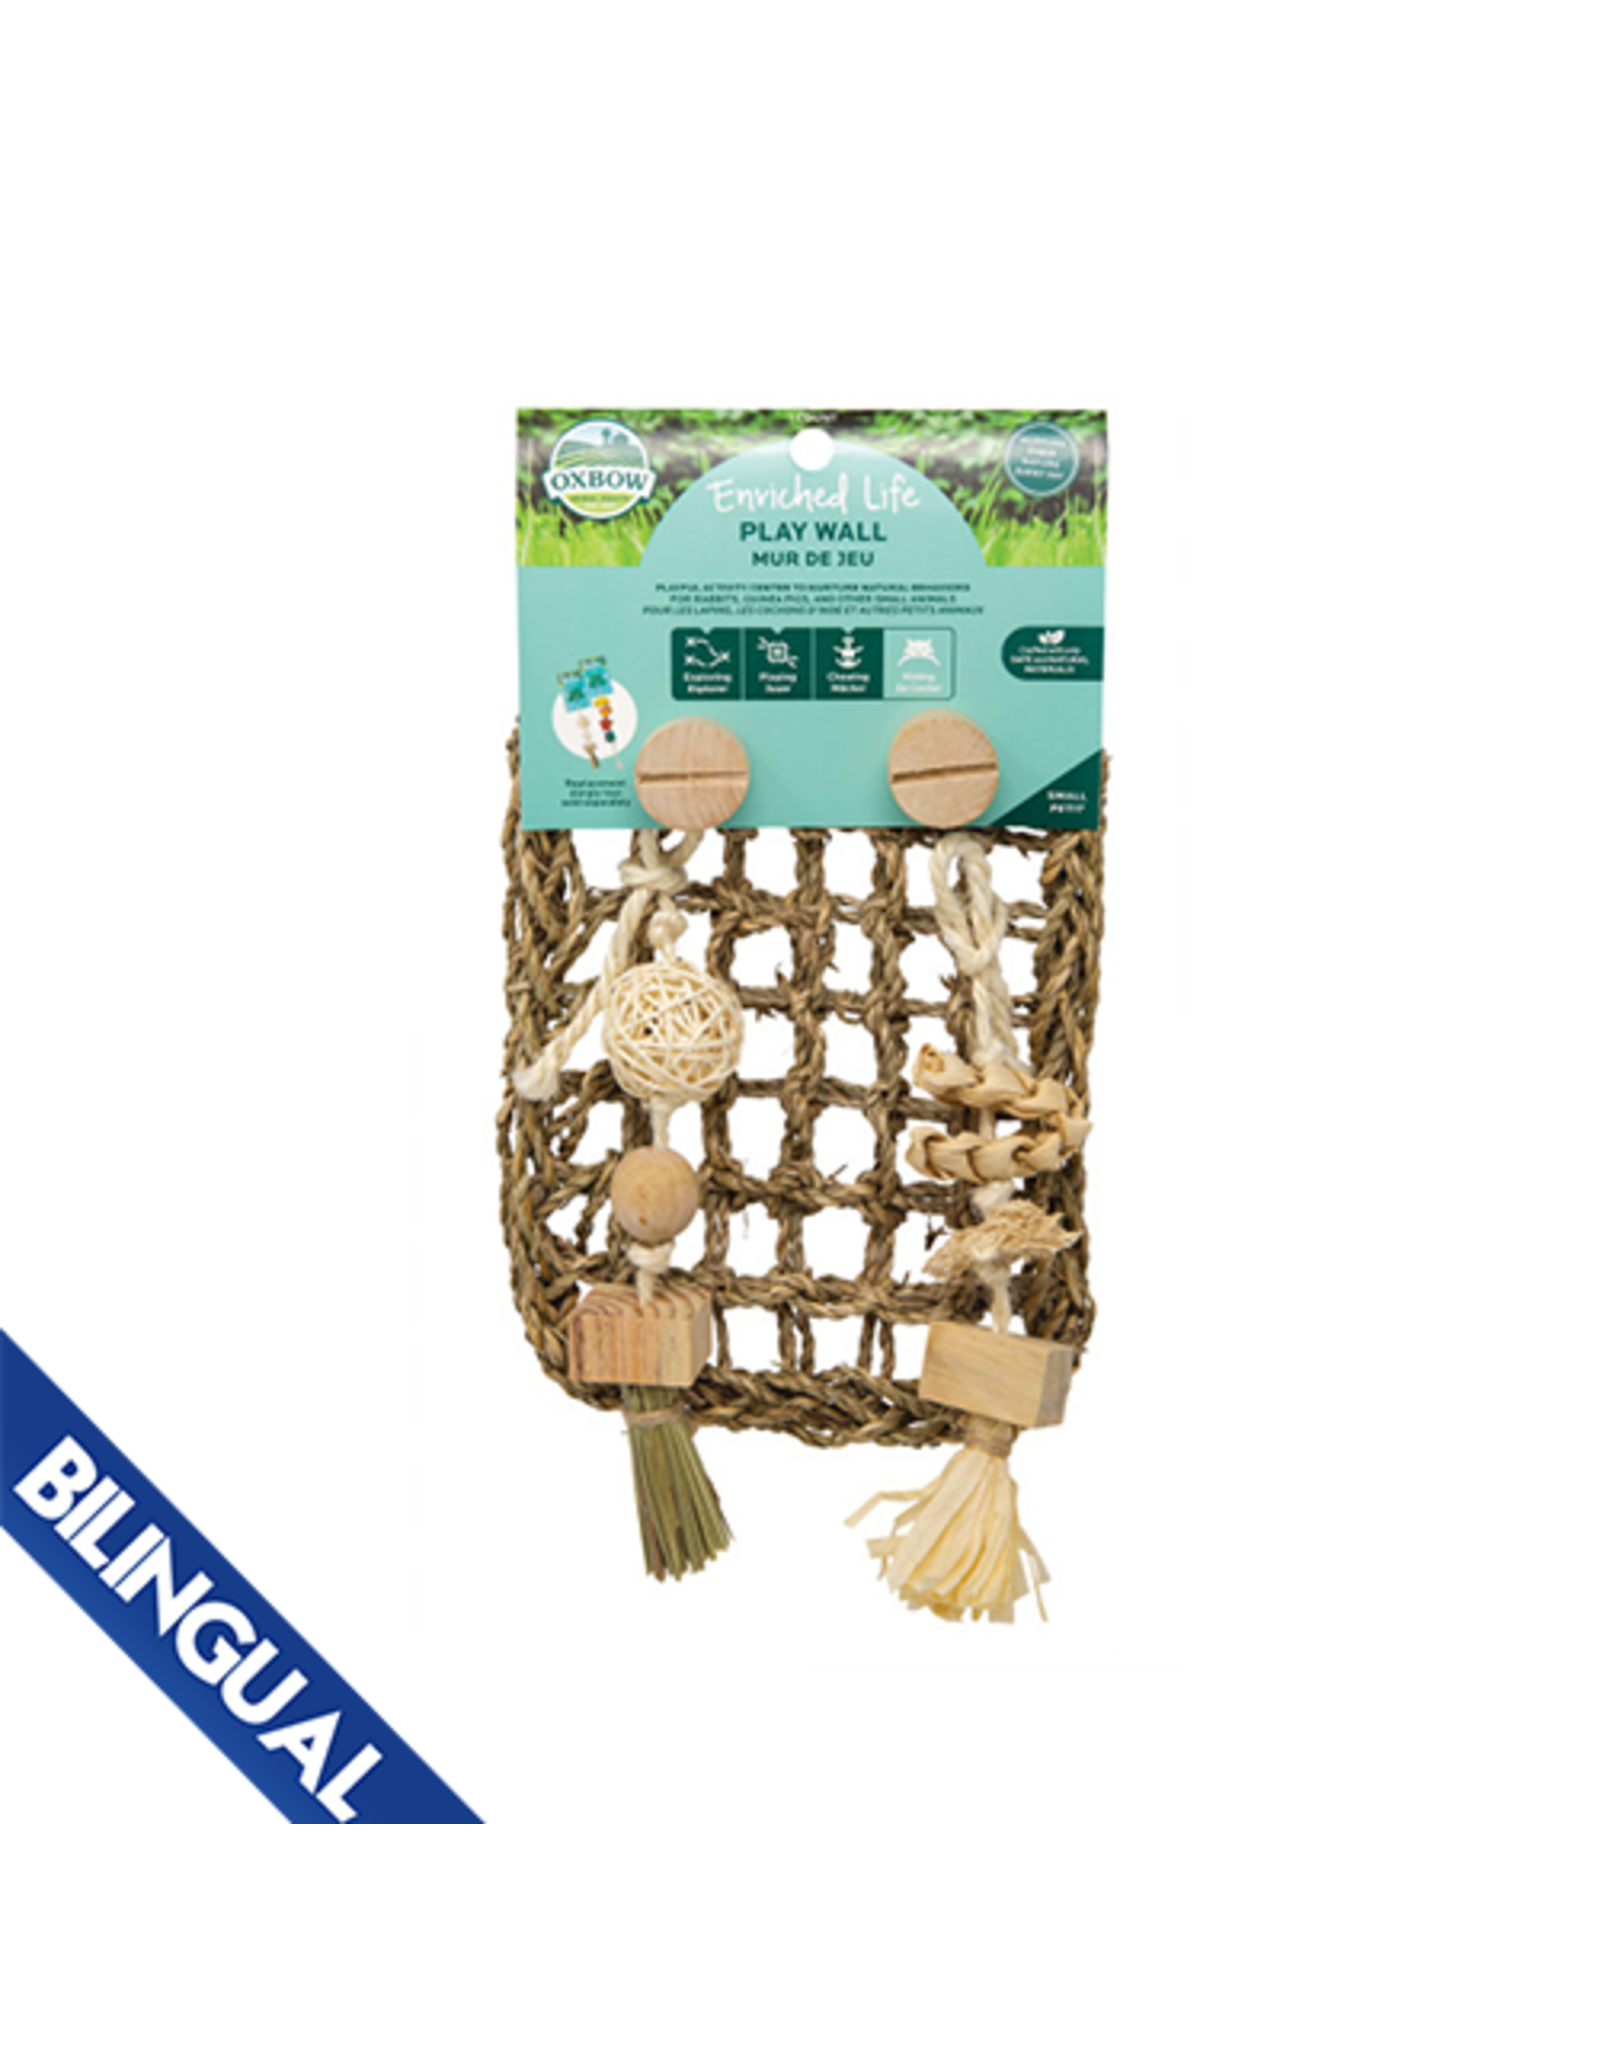 Oxbow Oxbow Enriched Life Play Wall Small